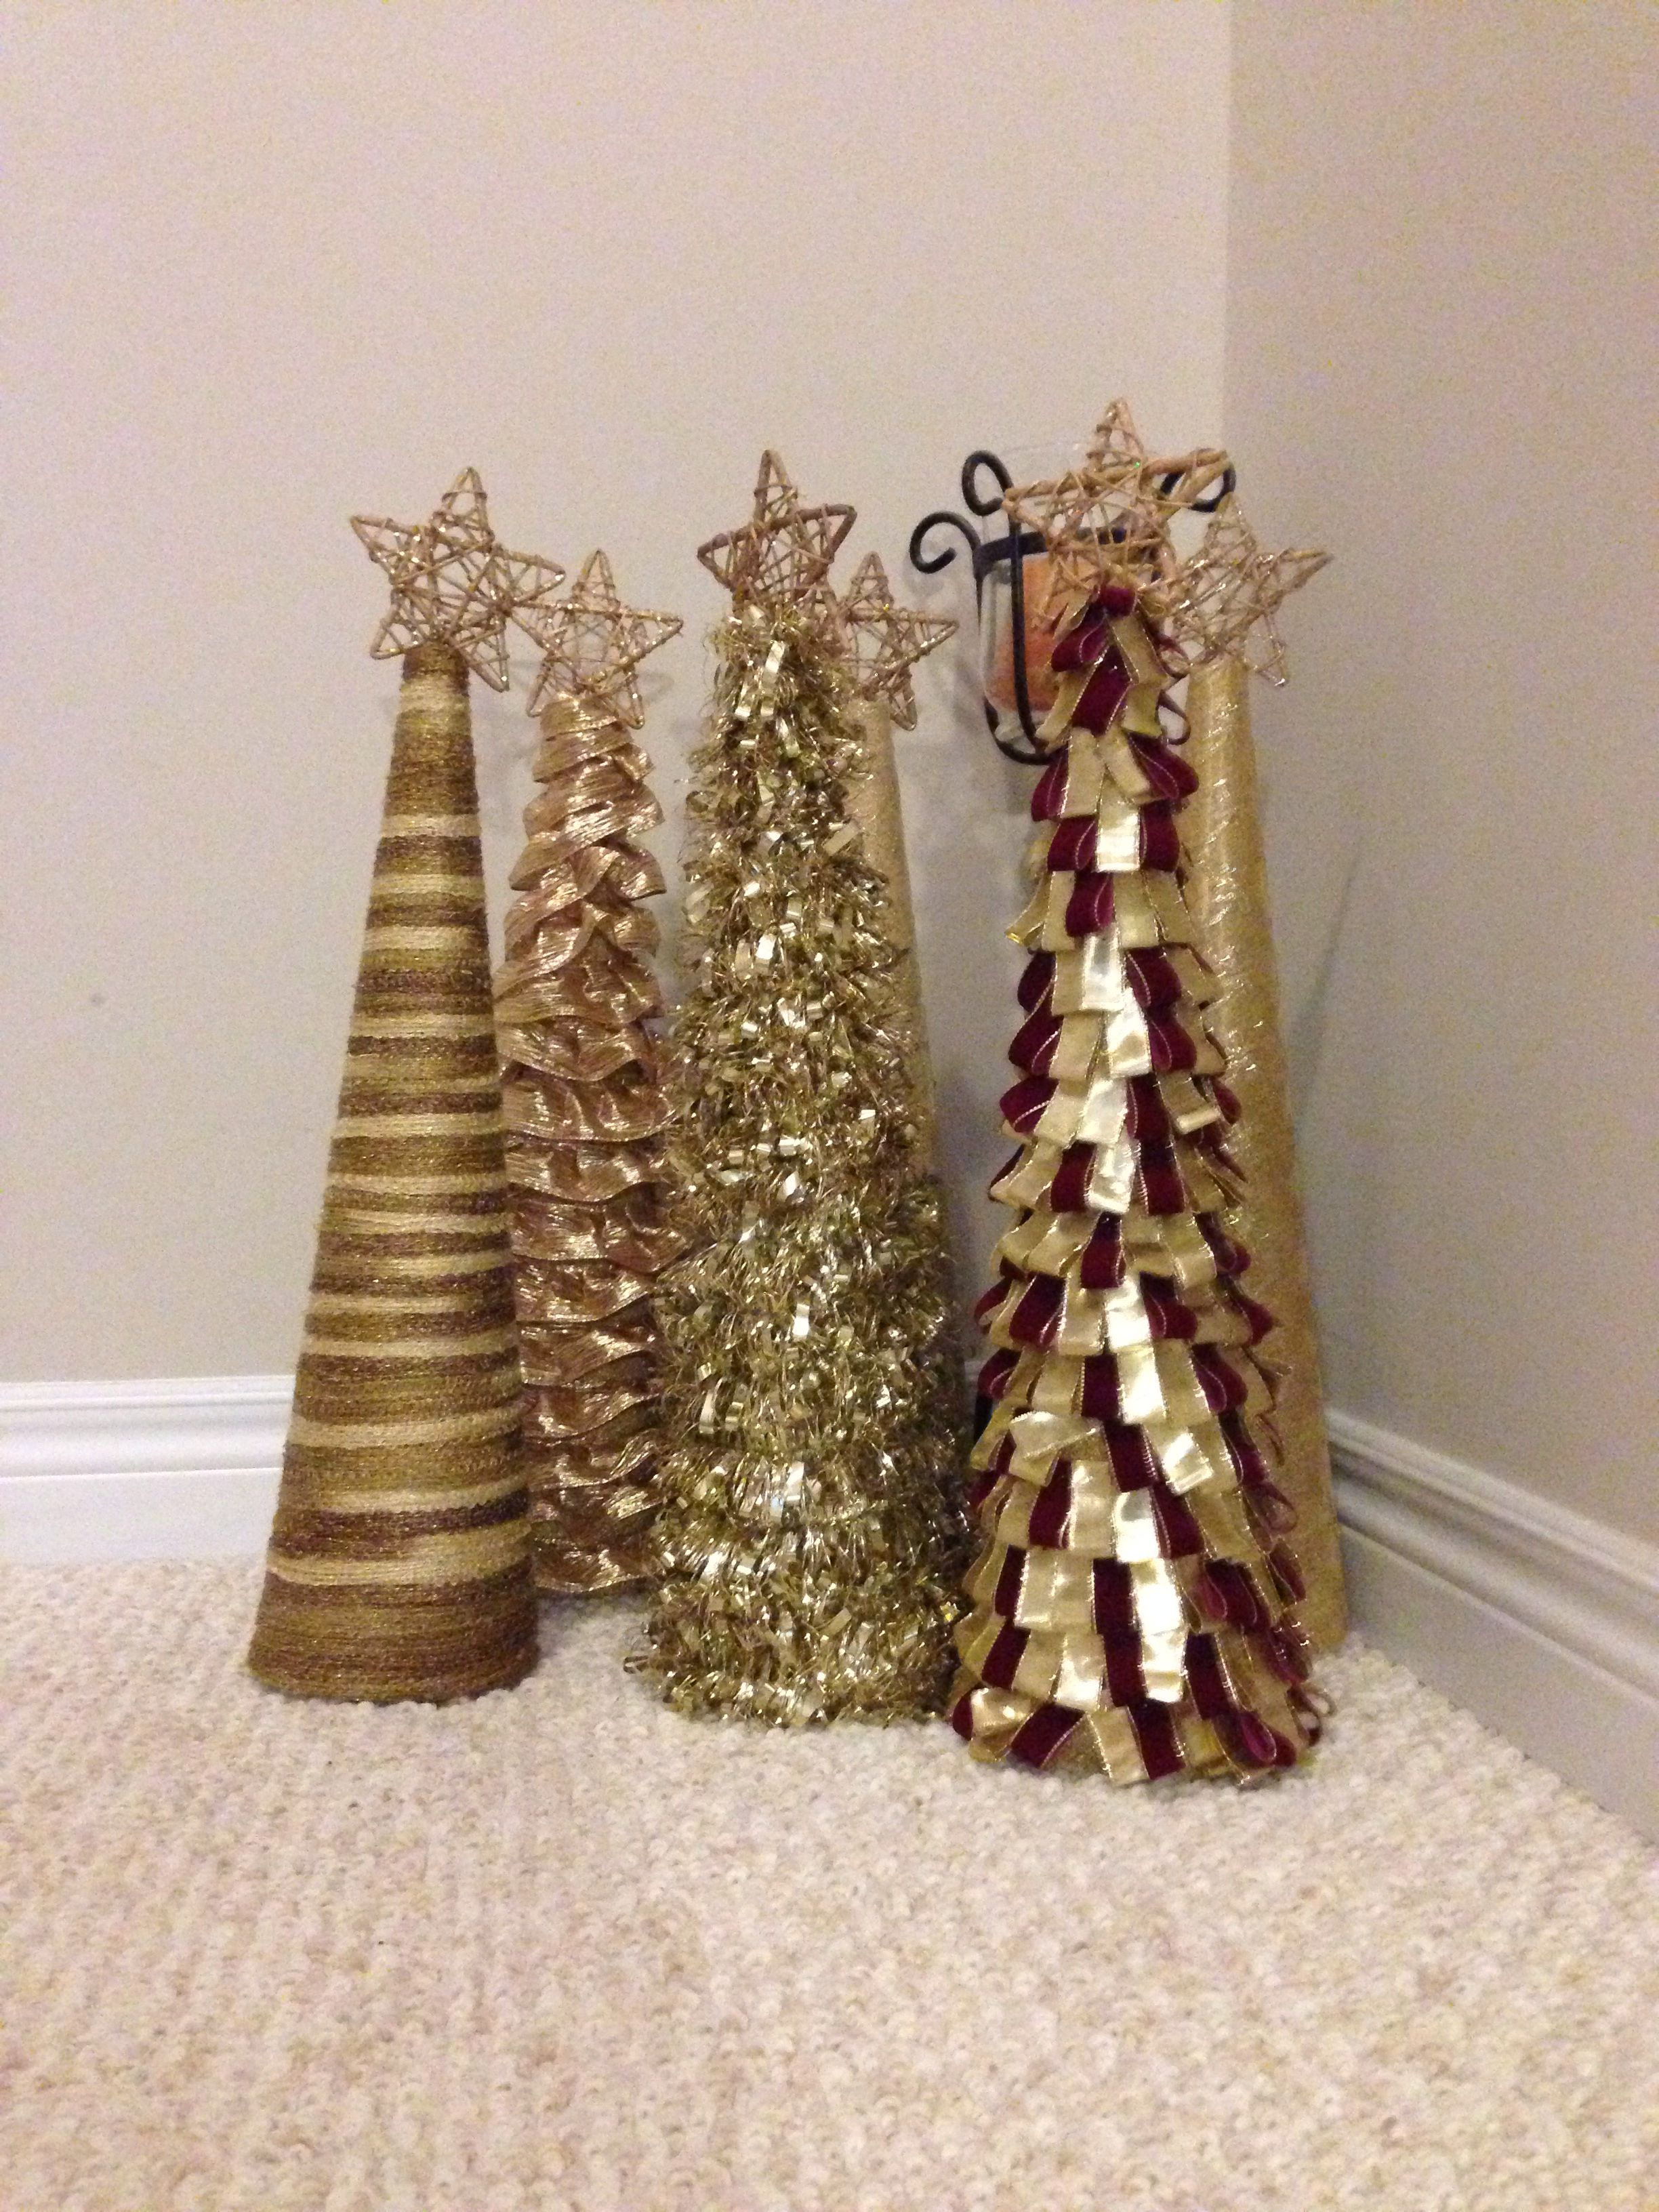 Styrofoam Cone Christmas Trees Wrapped In Yarn Tinsel Garland Wired Ribbon Or Sparkly Fabric Us Cone Christmas Trees Christmas Cones Holiday Christmas Tree